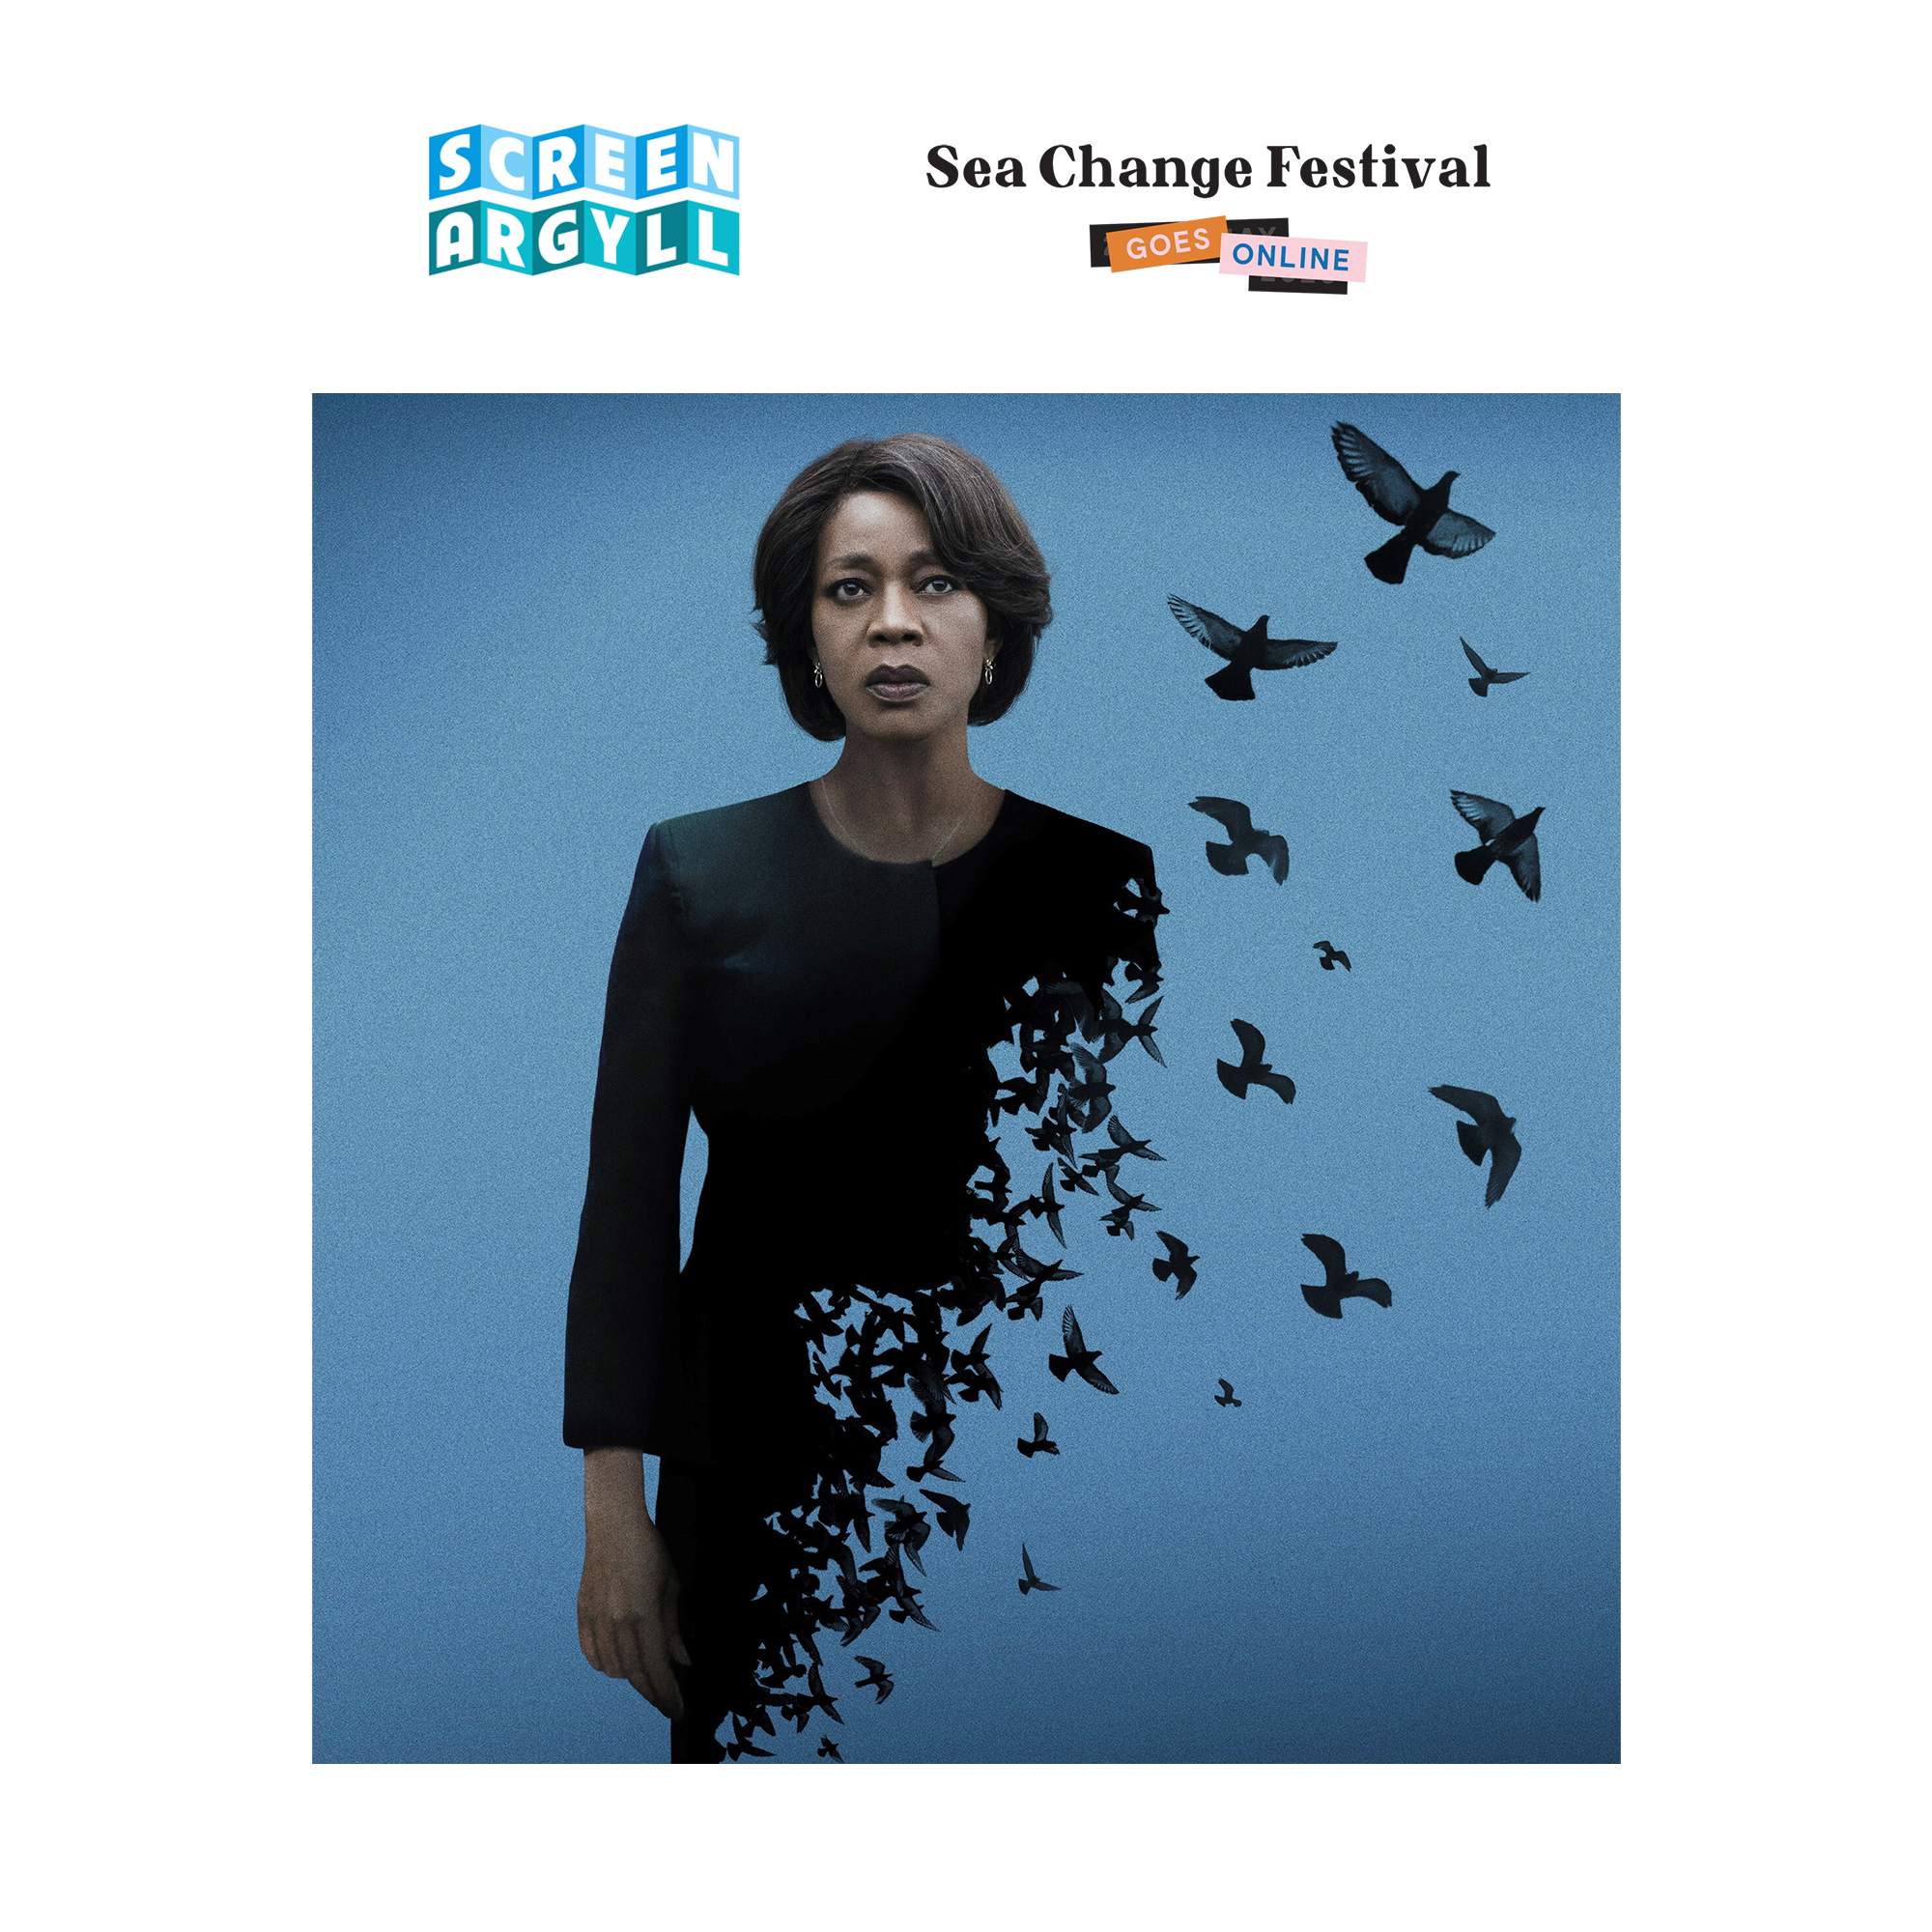 Clemency at Screen Argyll: Sea Change Film Festival